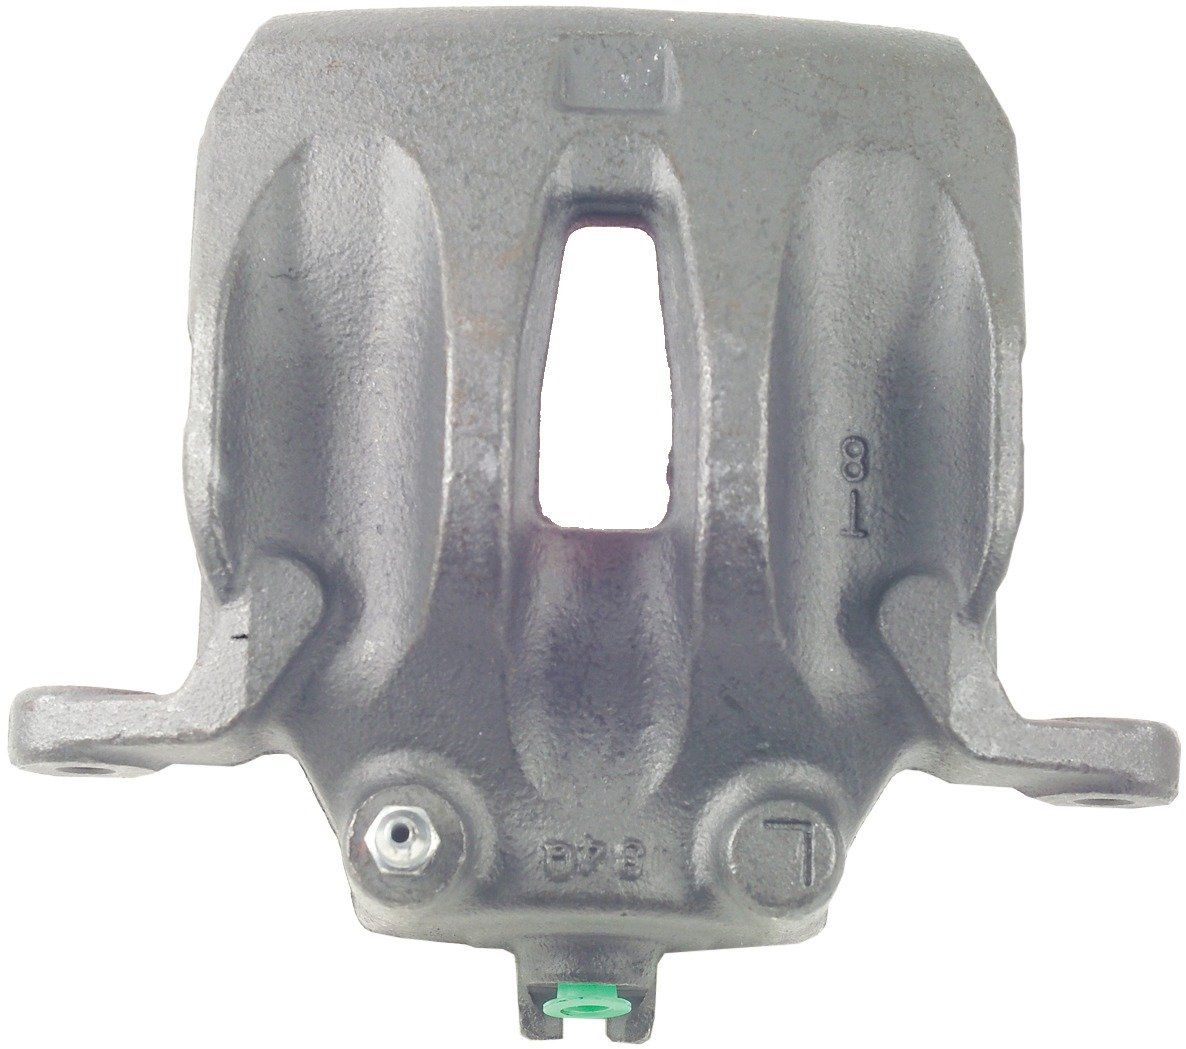 Brake Caliper Cardone 19-2880 Remanufactured Import Friction Ready Unloaded